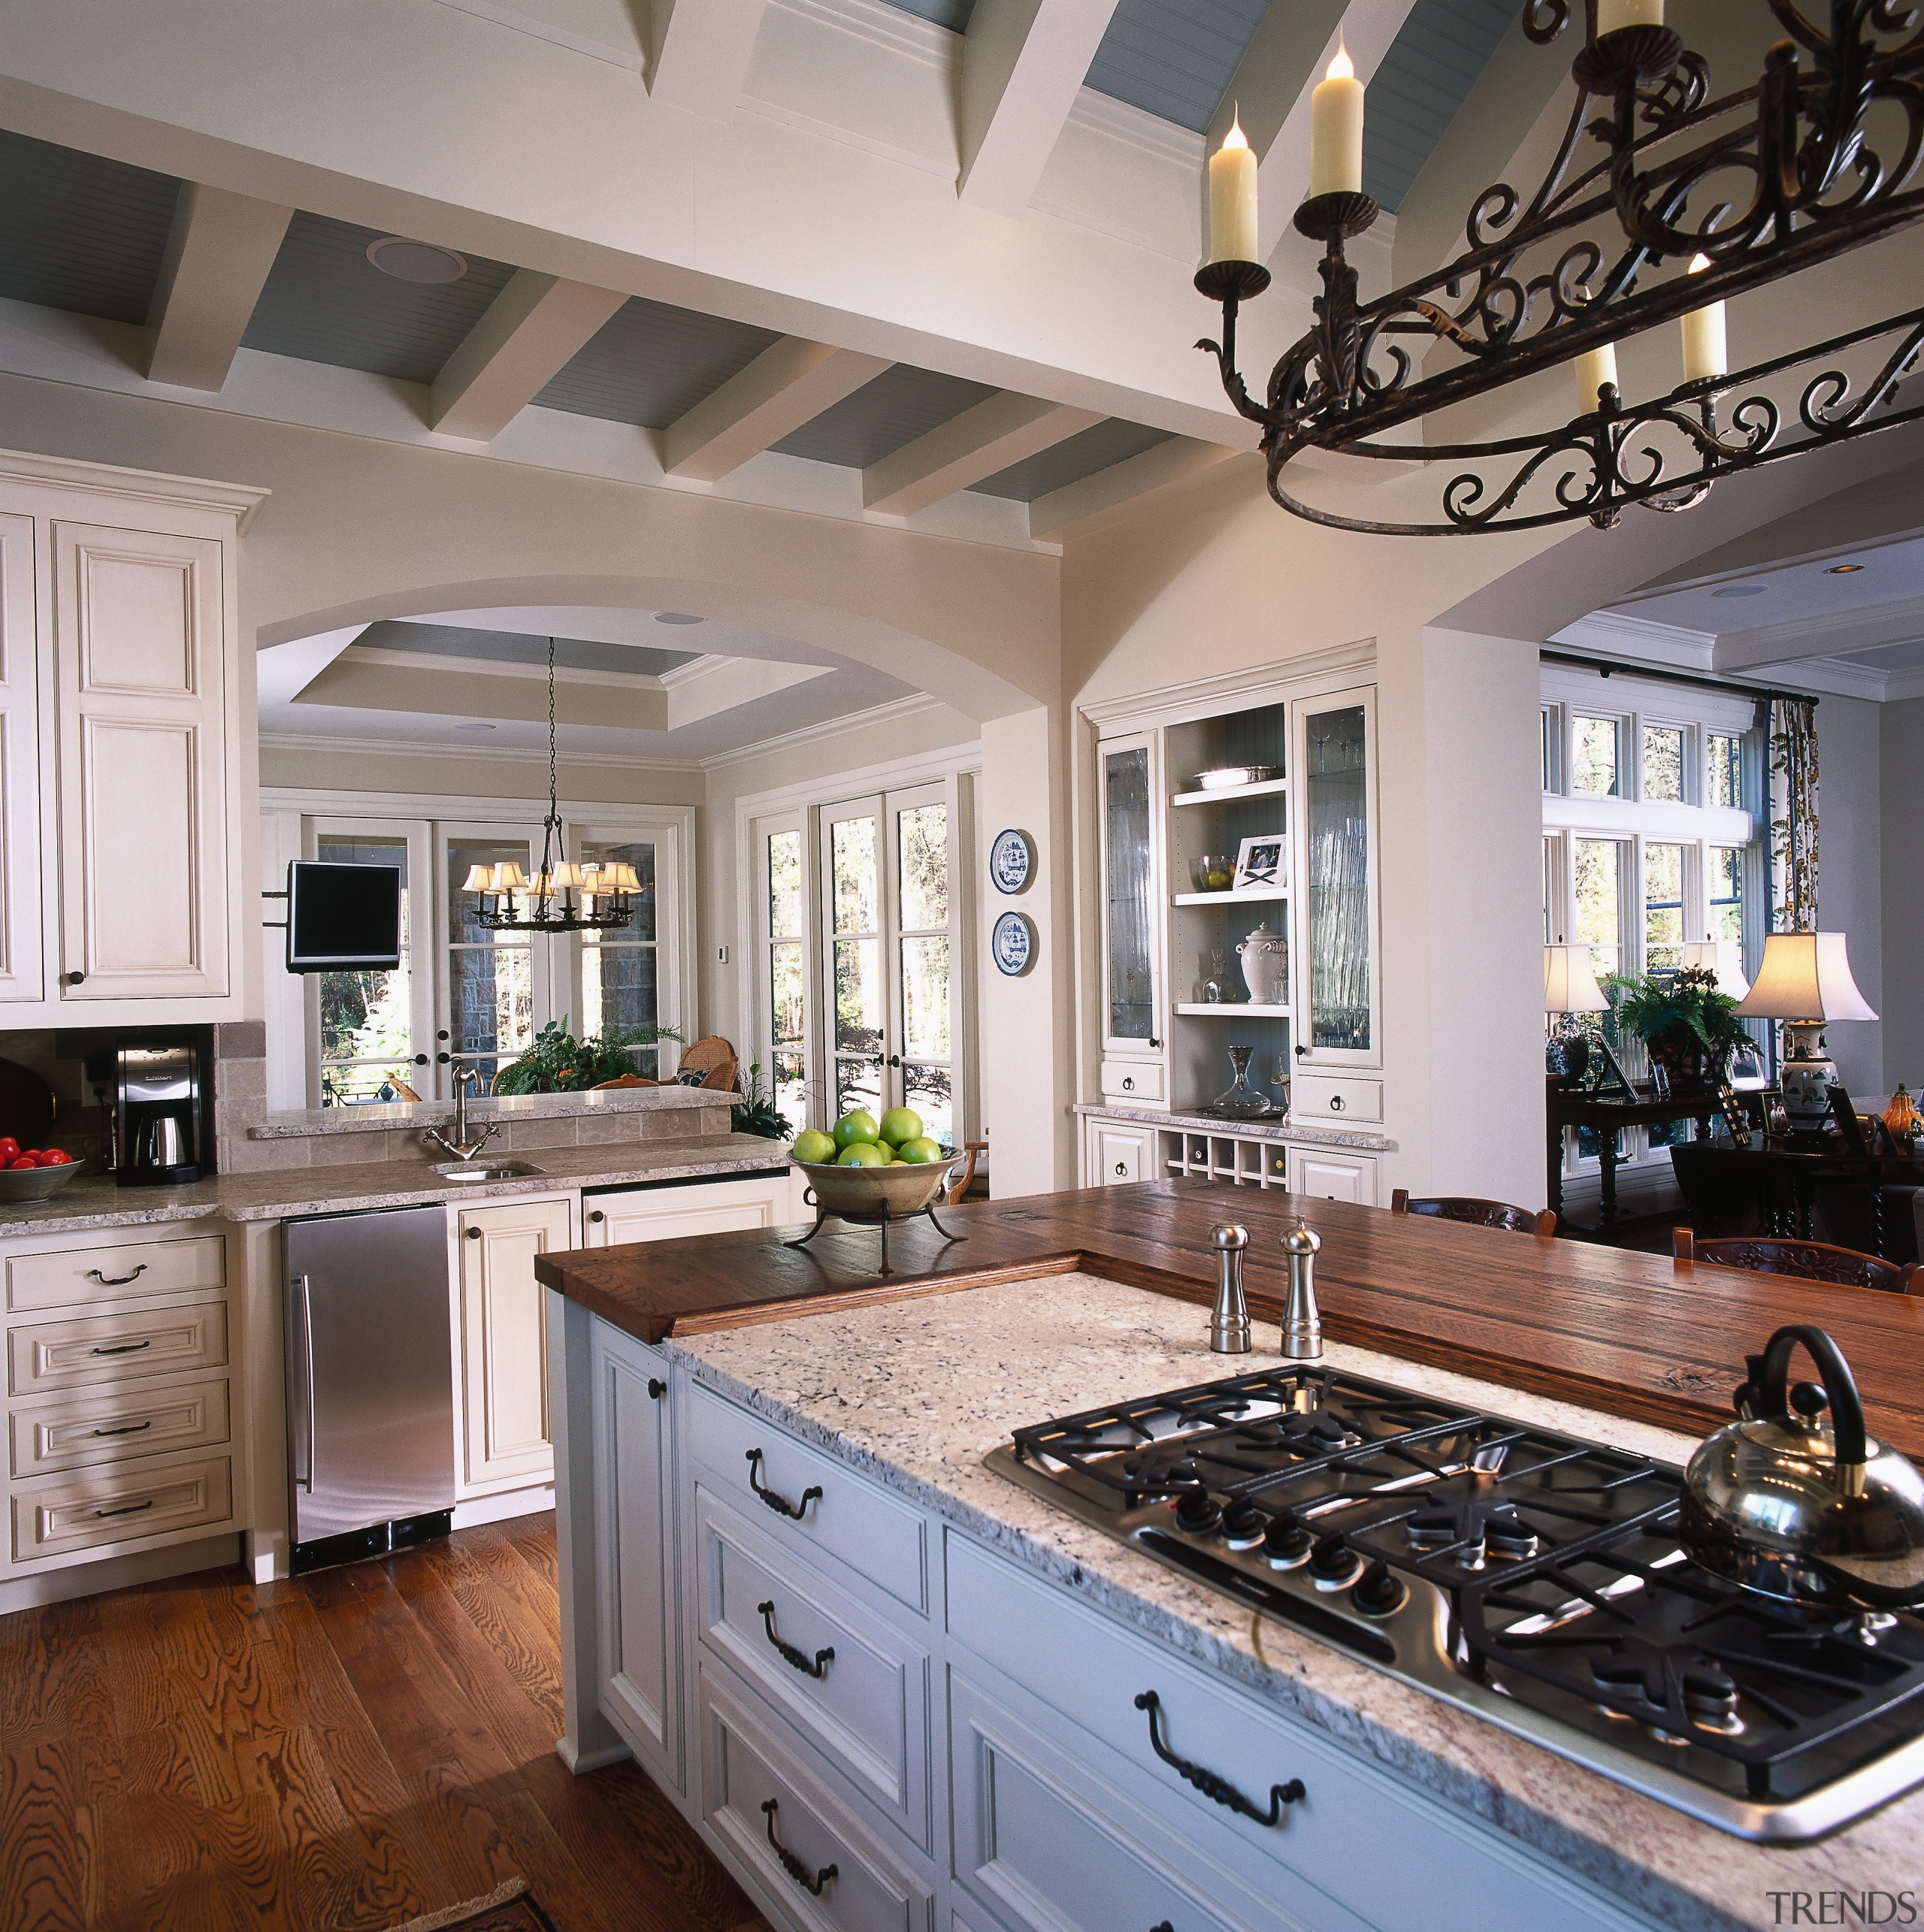 A view of the kitchen, wooden cabinetry and cabinetry, countertop, cuisine classique, home, interior design, kitchen, room, window, gray